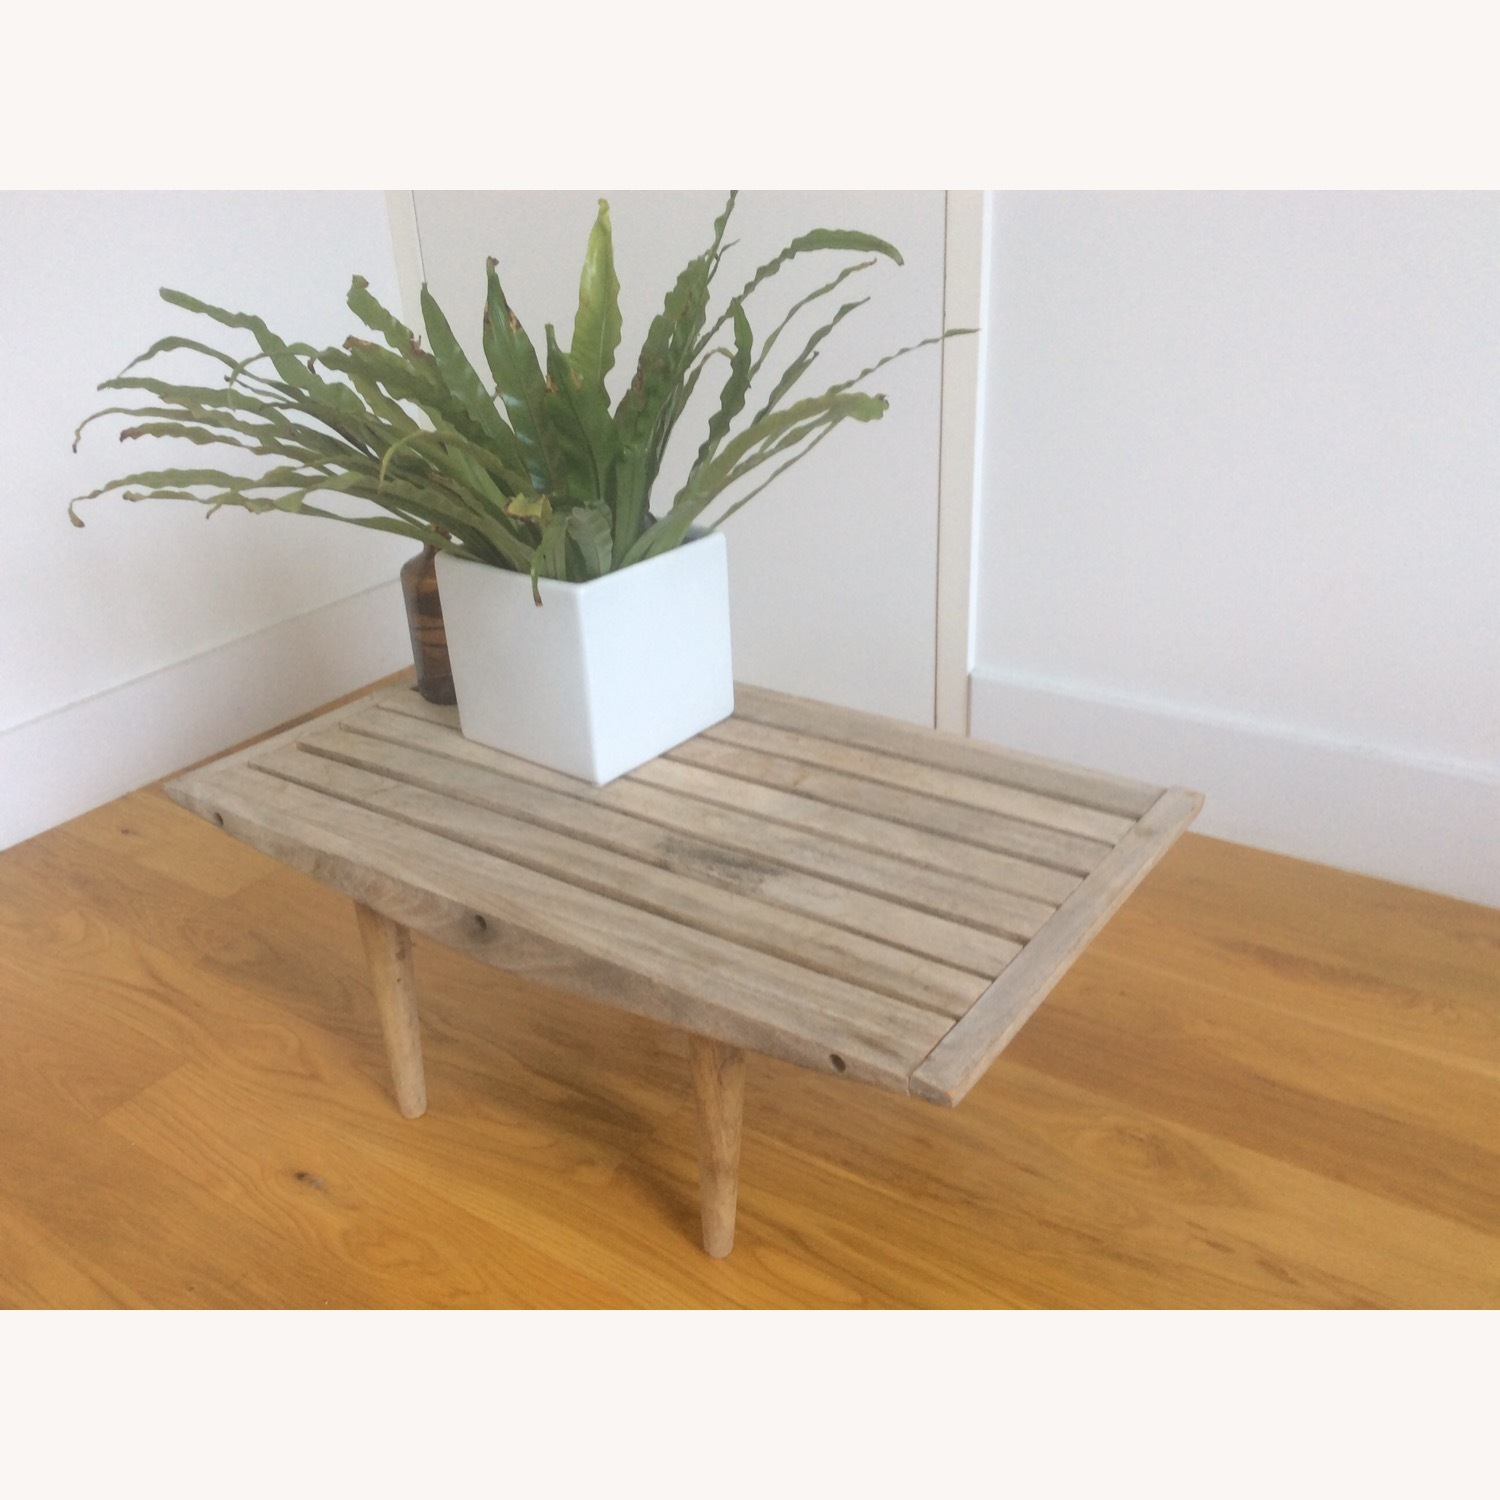 Vintage Wooden Coffee Table - image-4